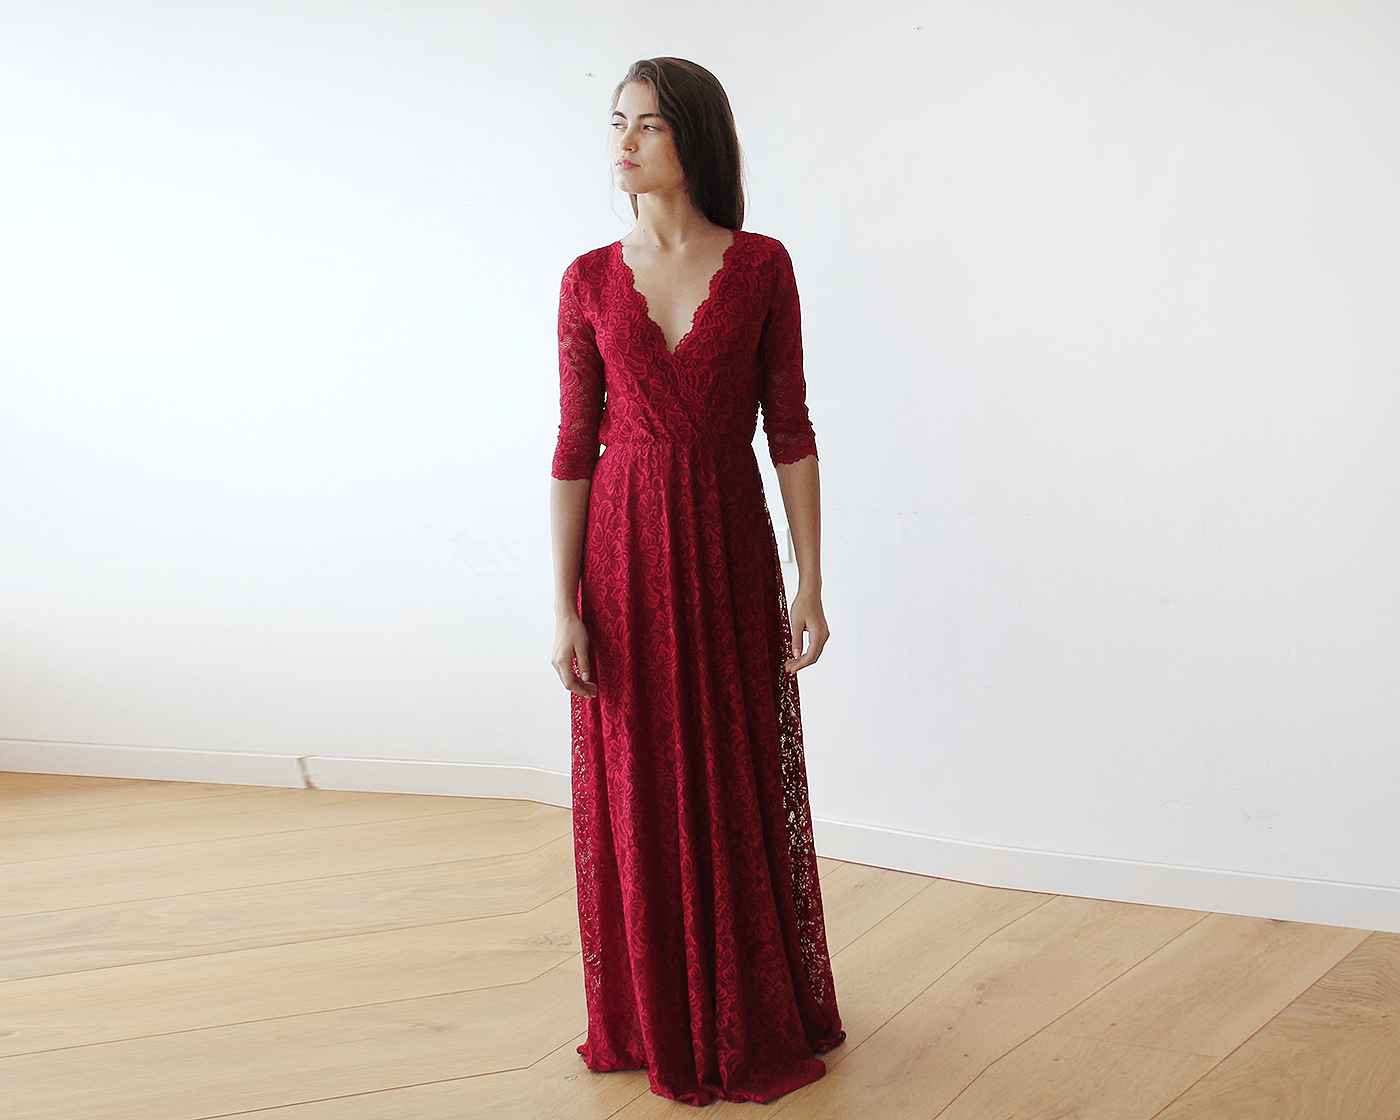 fa040cdbbce7 Lace three quarters sleeves Bordeaux maxi dress 1124 in 2019 ...